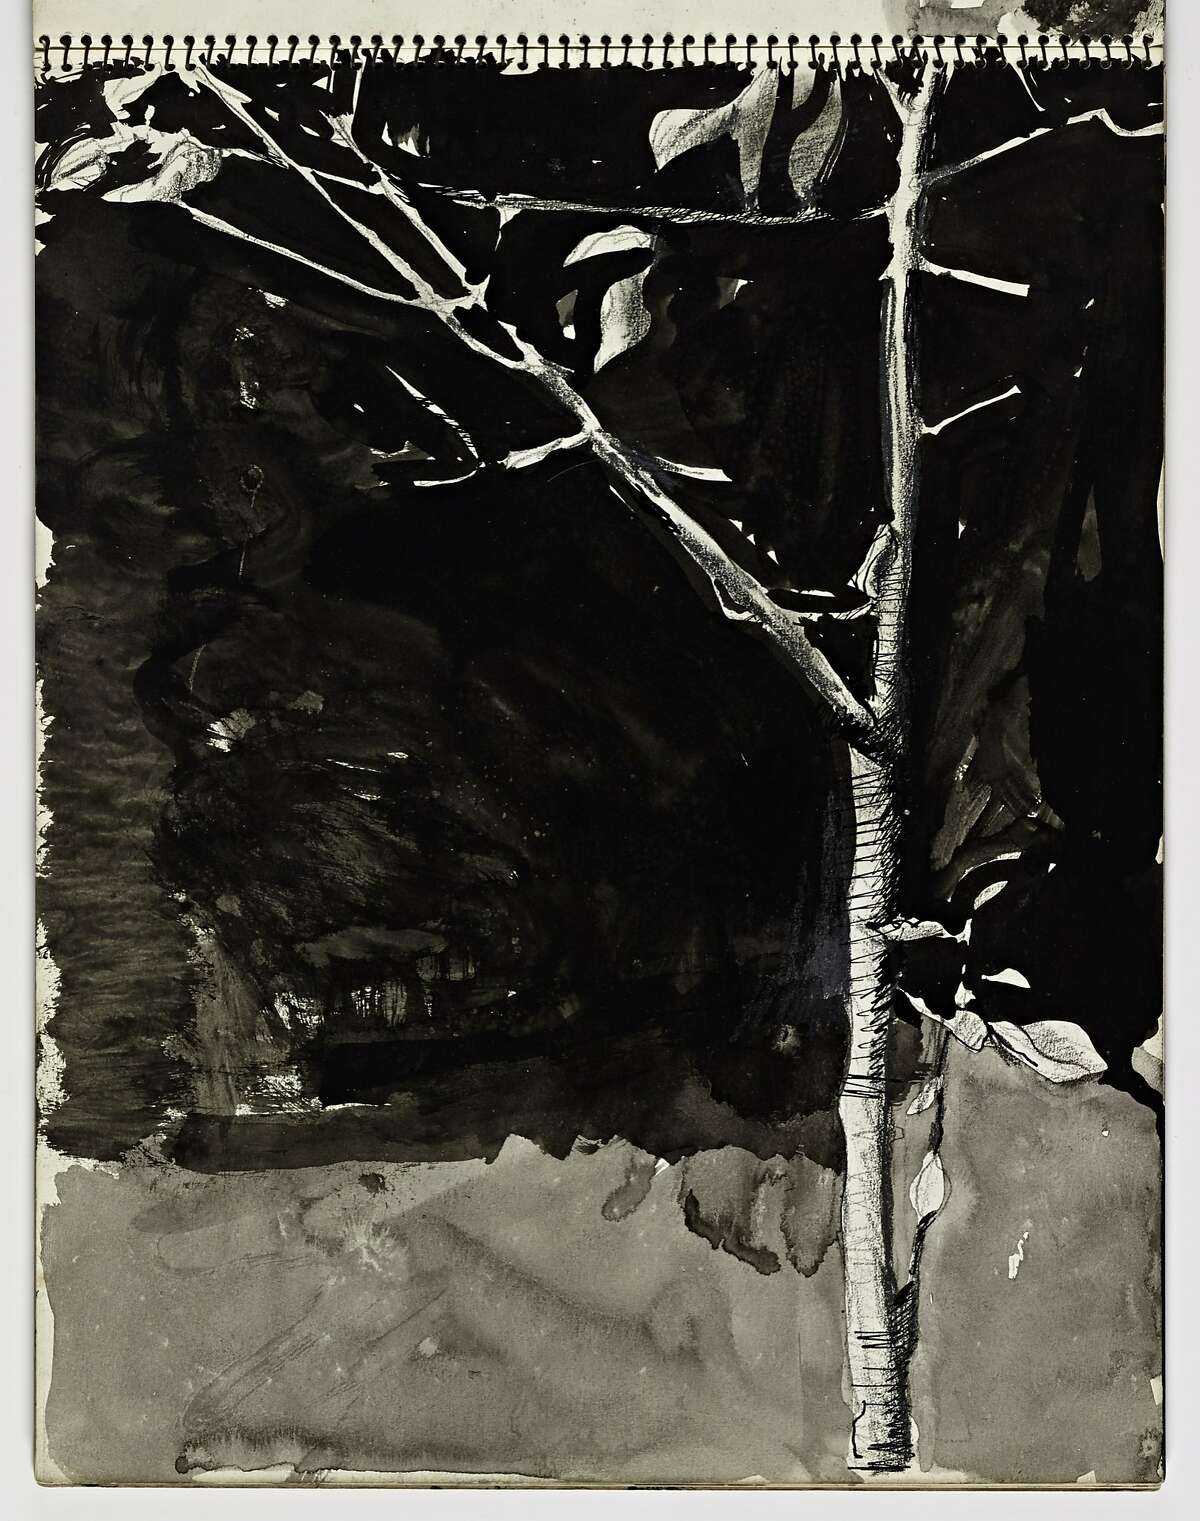 Untitled (Tree) (1943-93) Brush and ink, pen and ink and graphite on paper by Richard Diebenkorn